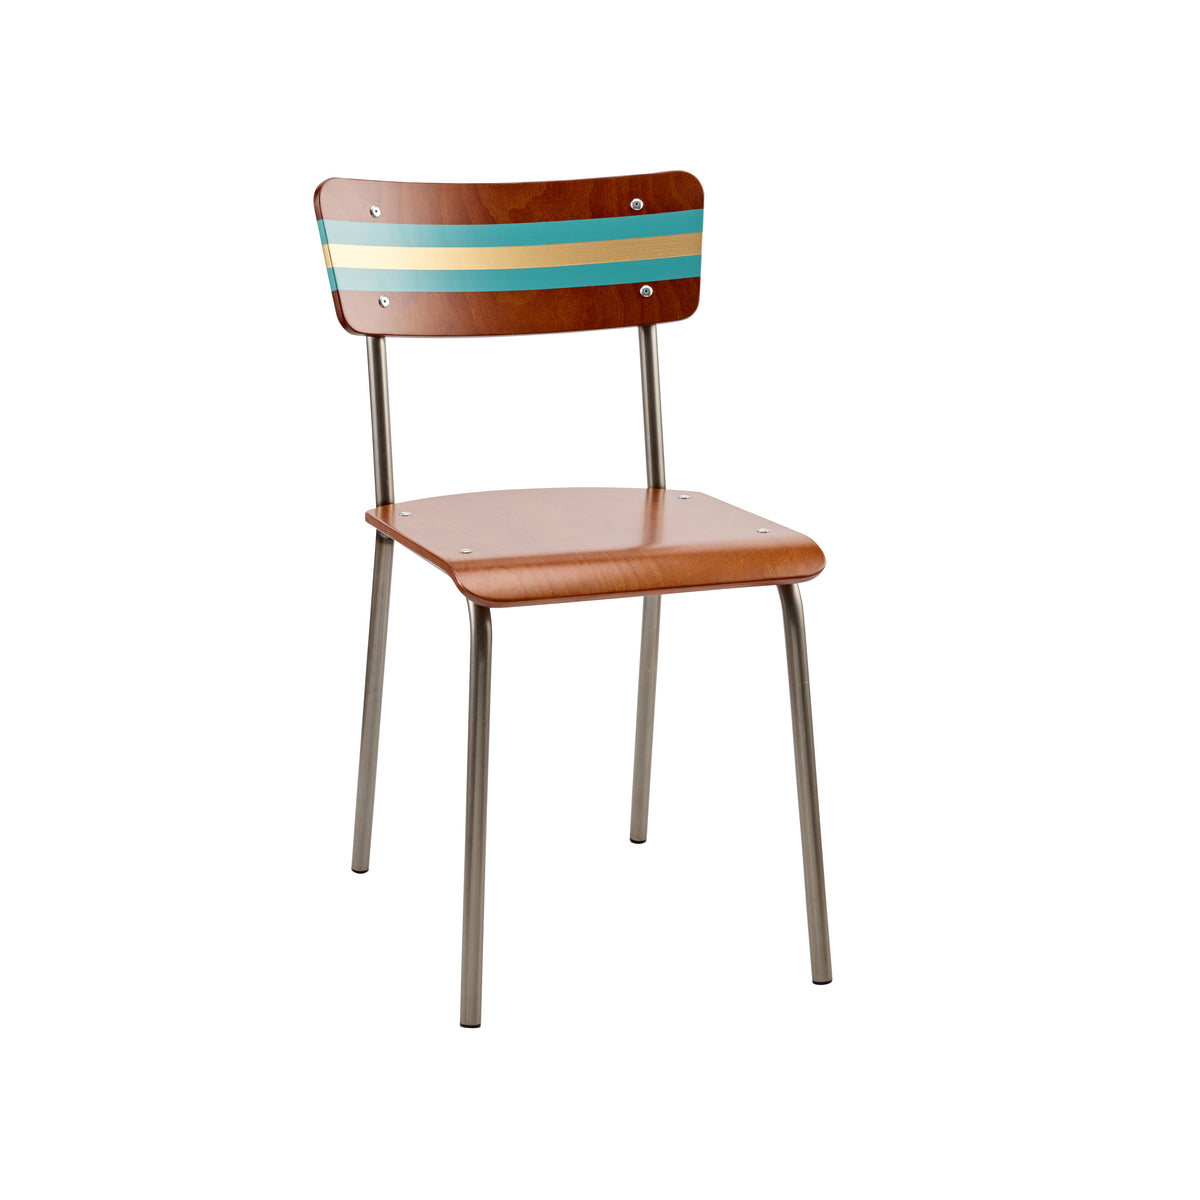 Hand Painted School Chair - Teal & Gold